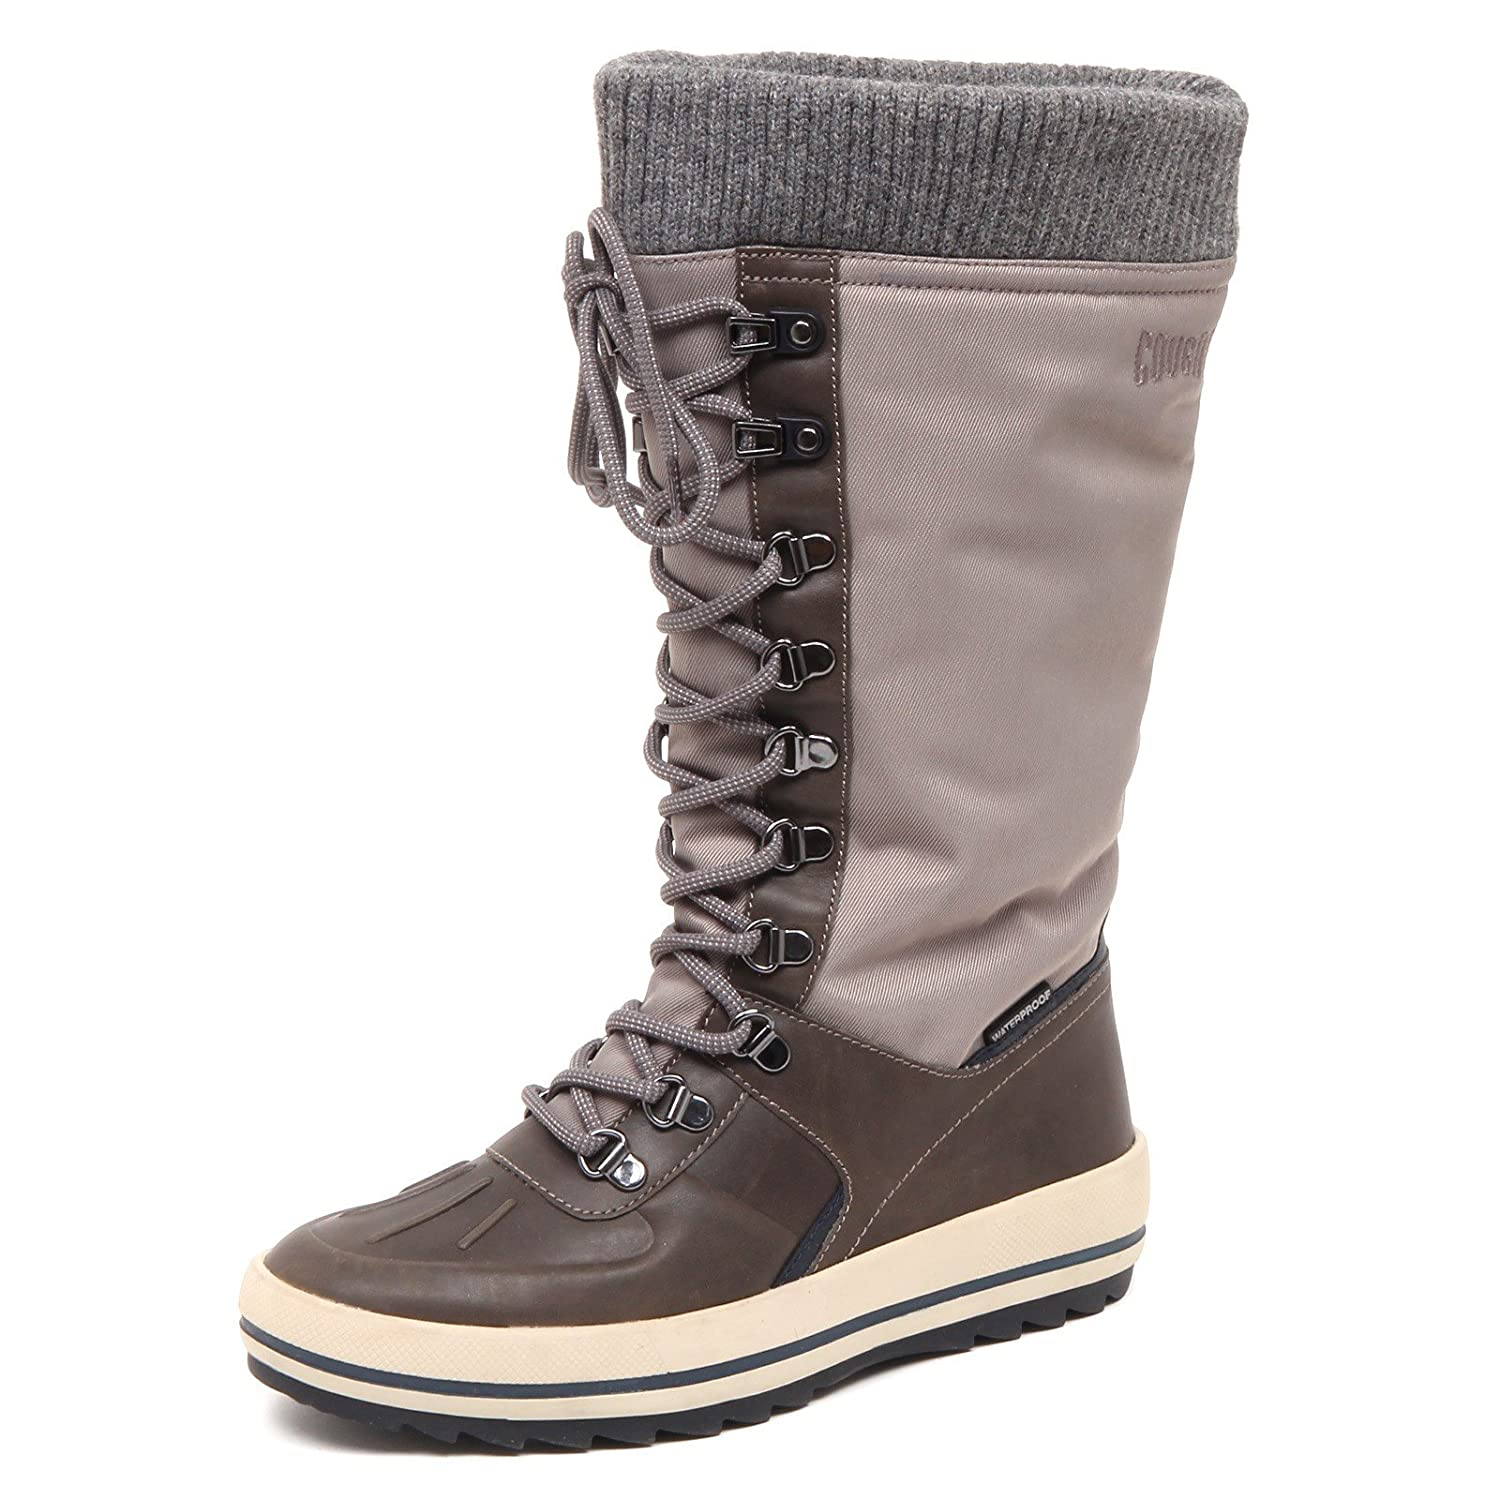 Cougar D8582 (Without Box) Stivale damen Tissue Vancouver braun Taupe Stiefel Woman